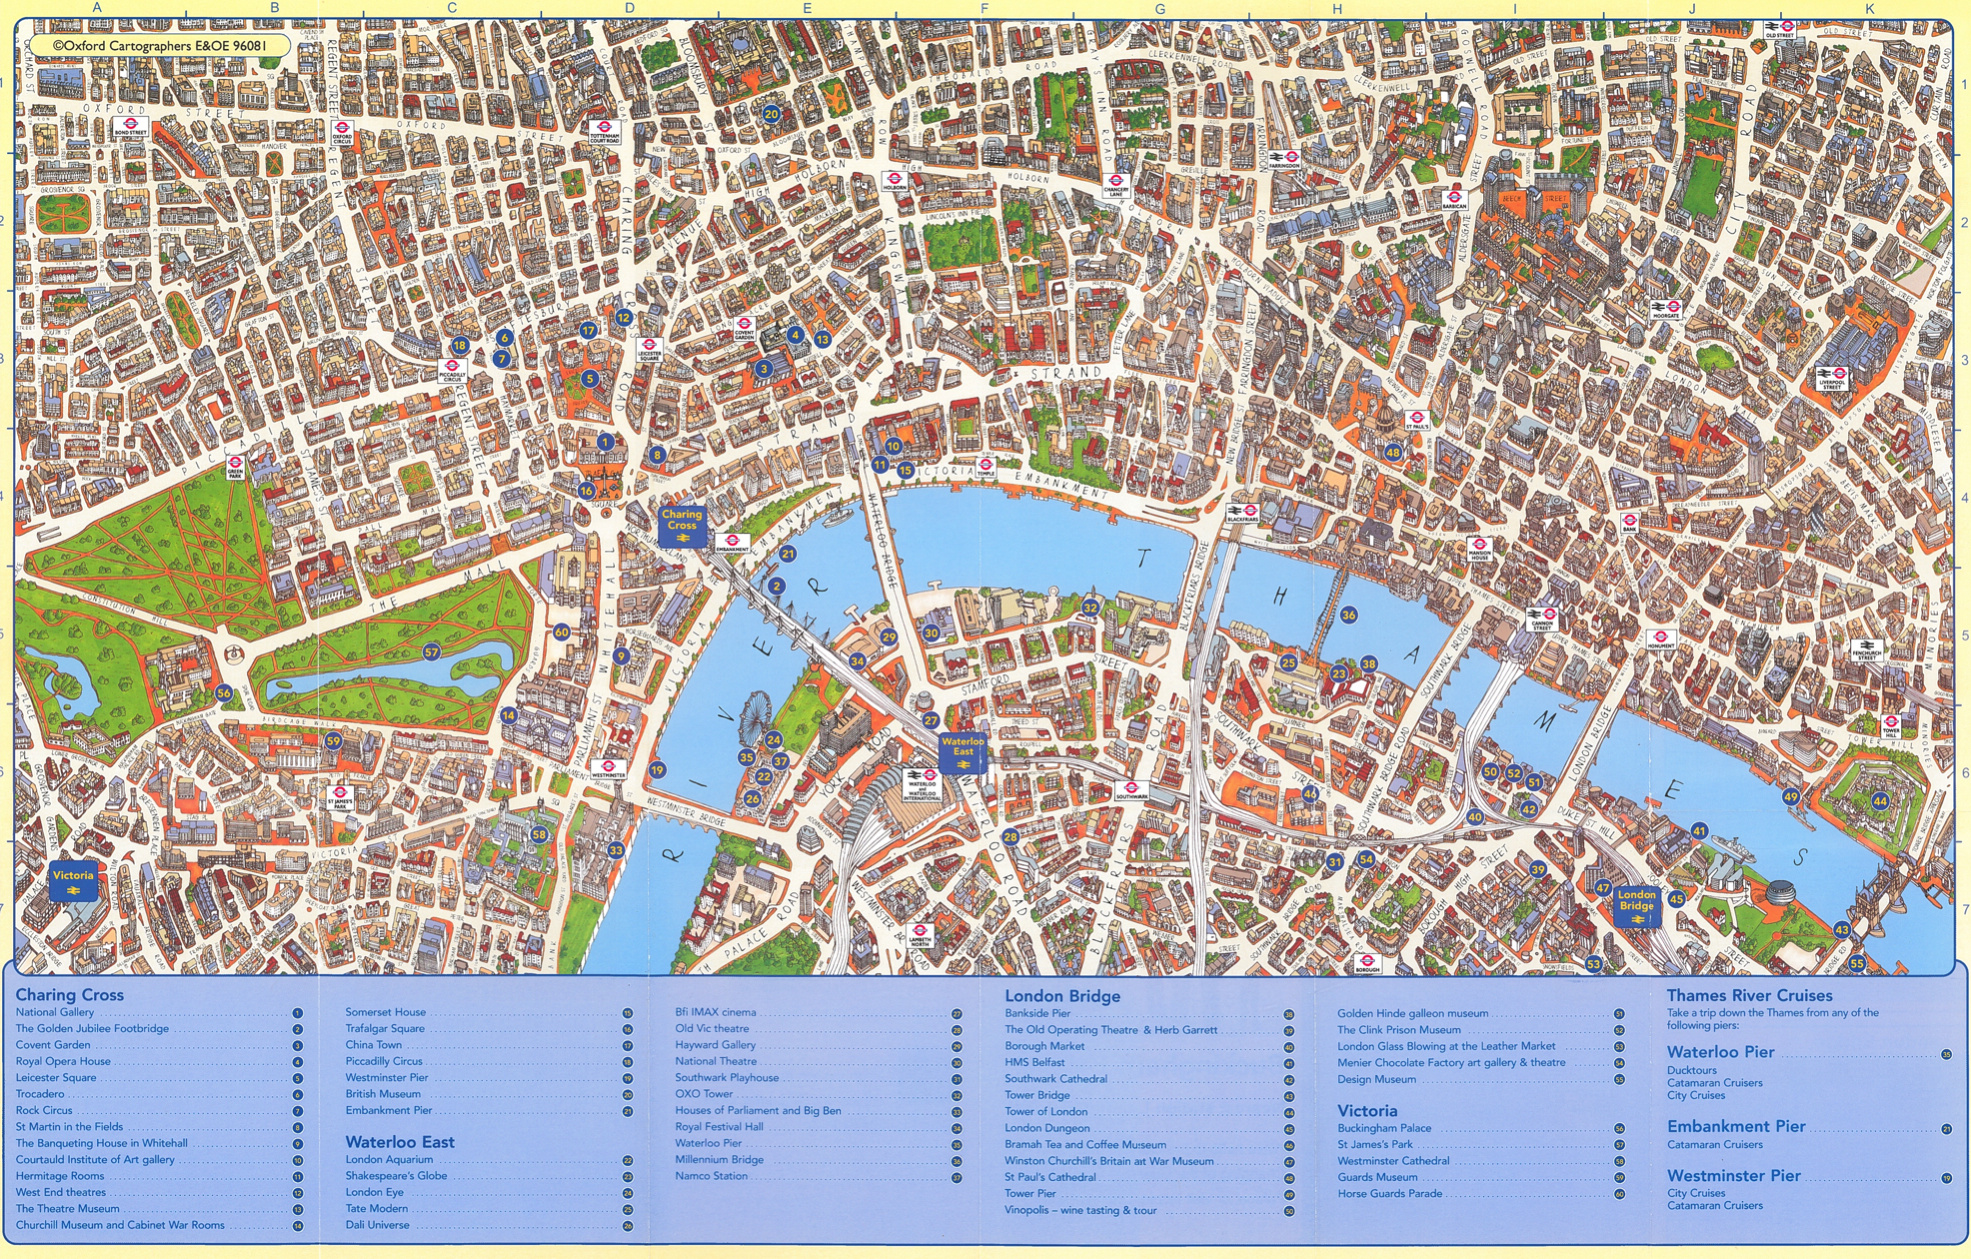 London Tourist Map – Map Of London England With Tourist Attractions